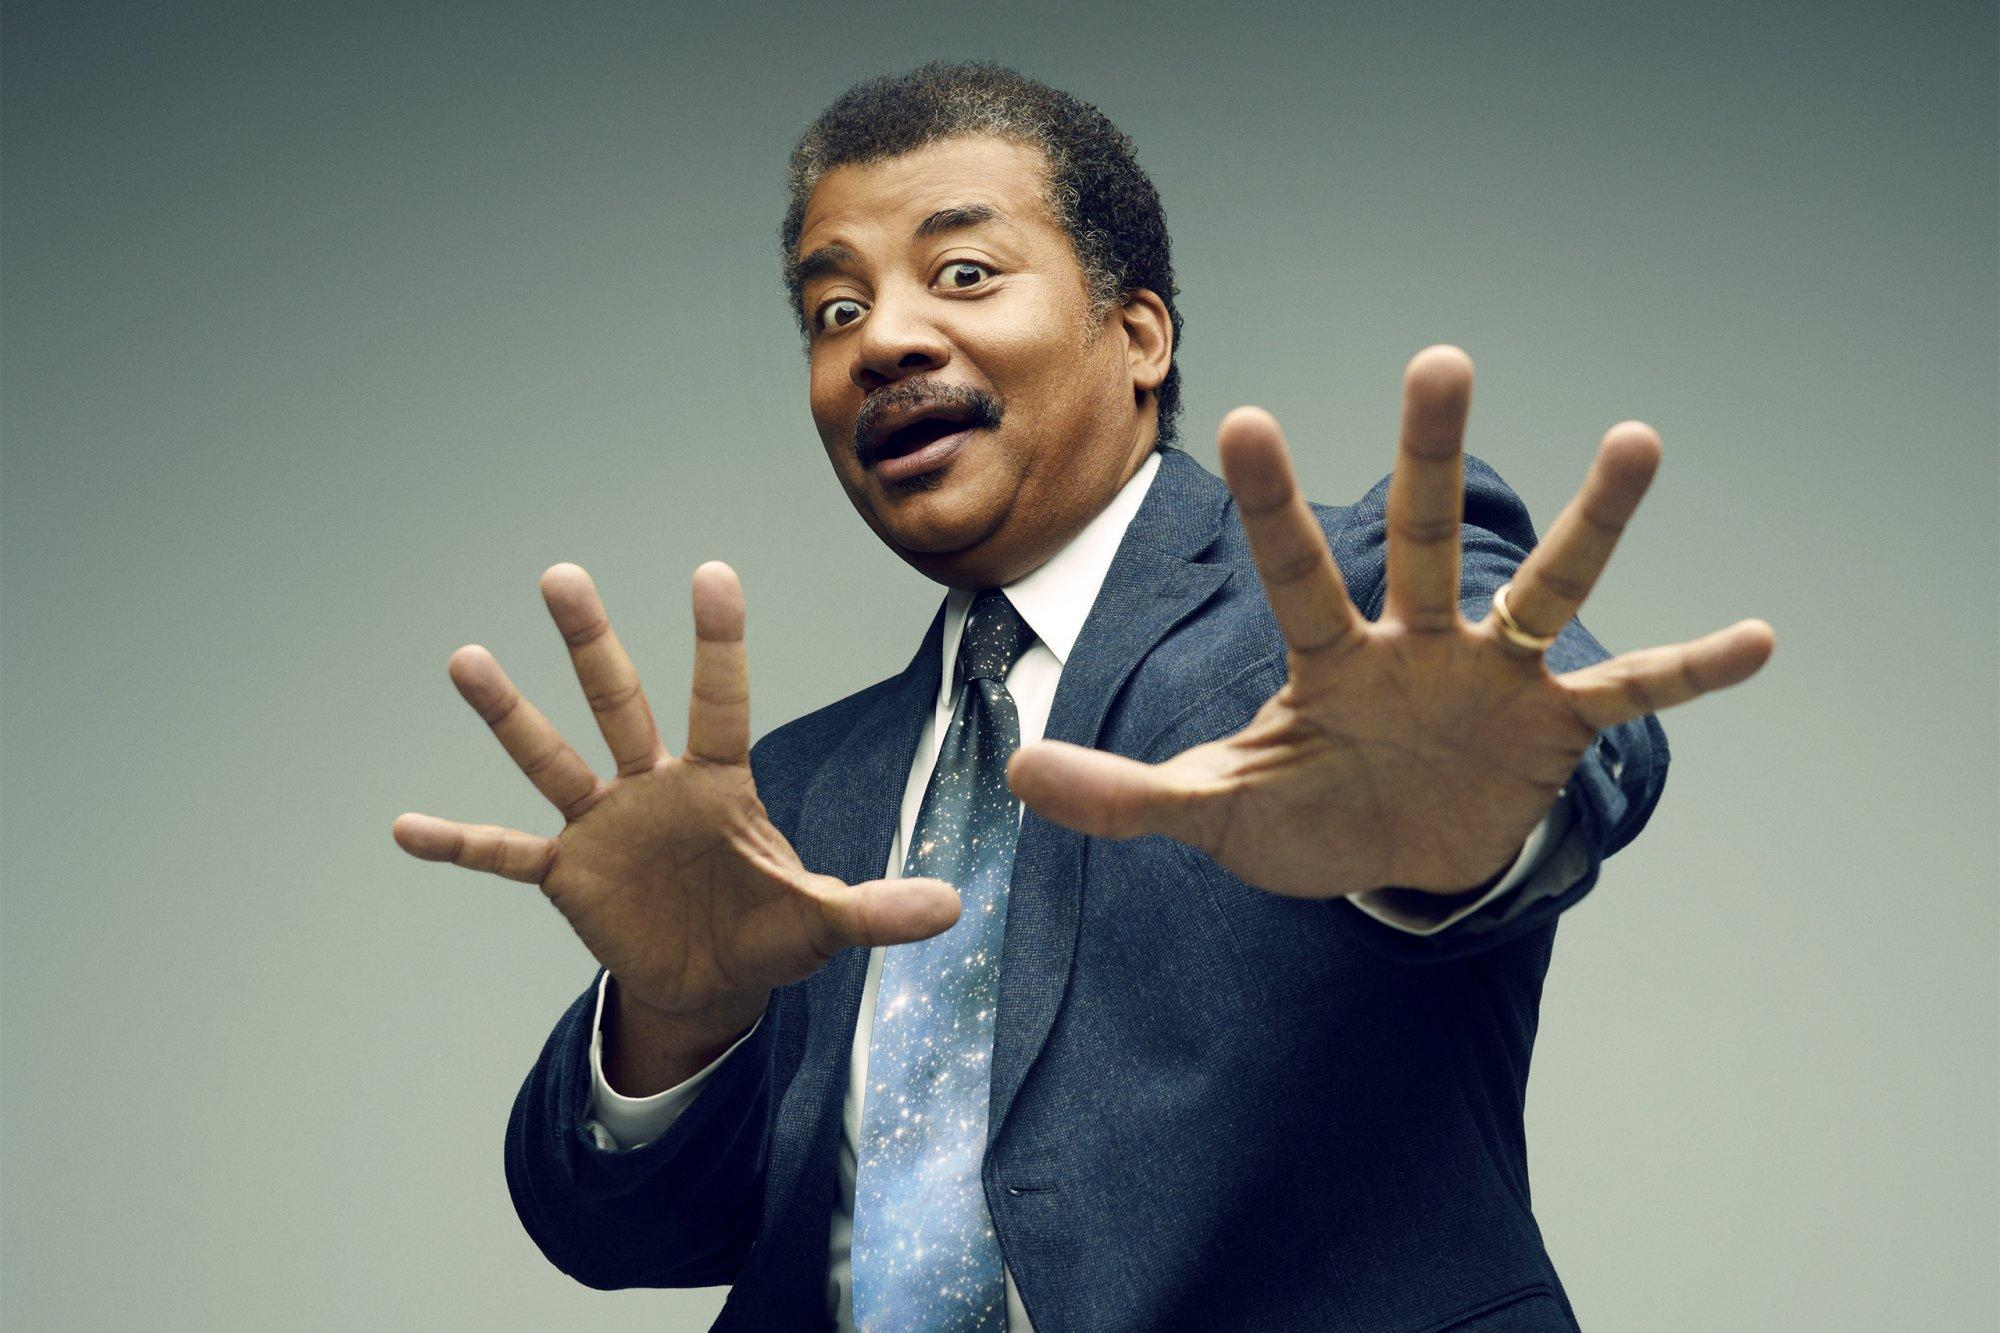 Neil DeGrasse Tyson Delivers 'Most Important' Message Yet